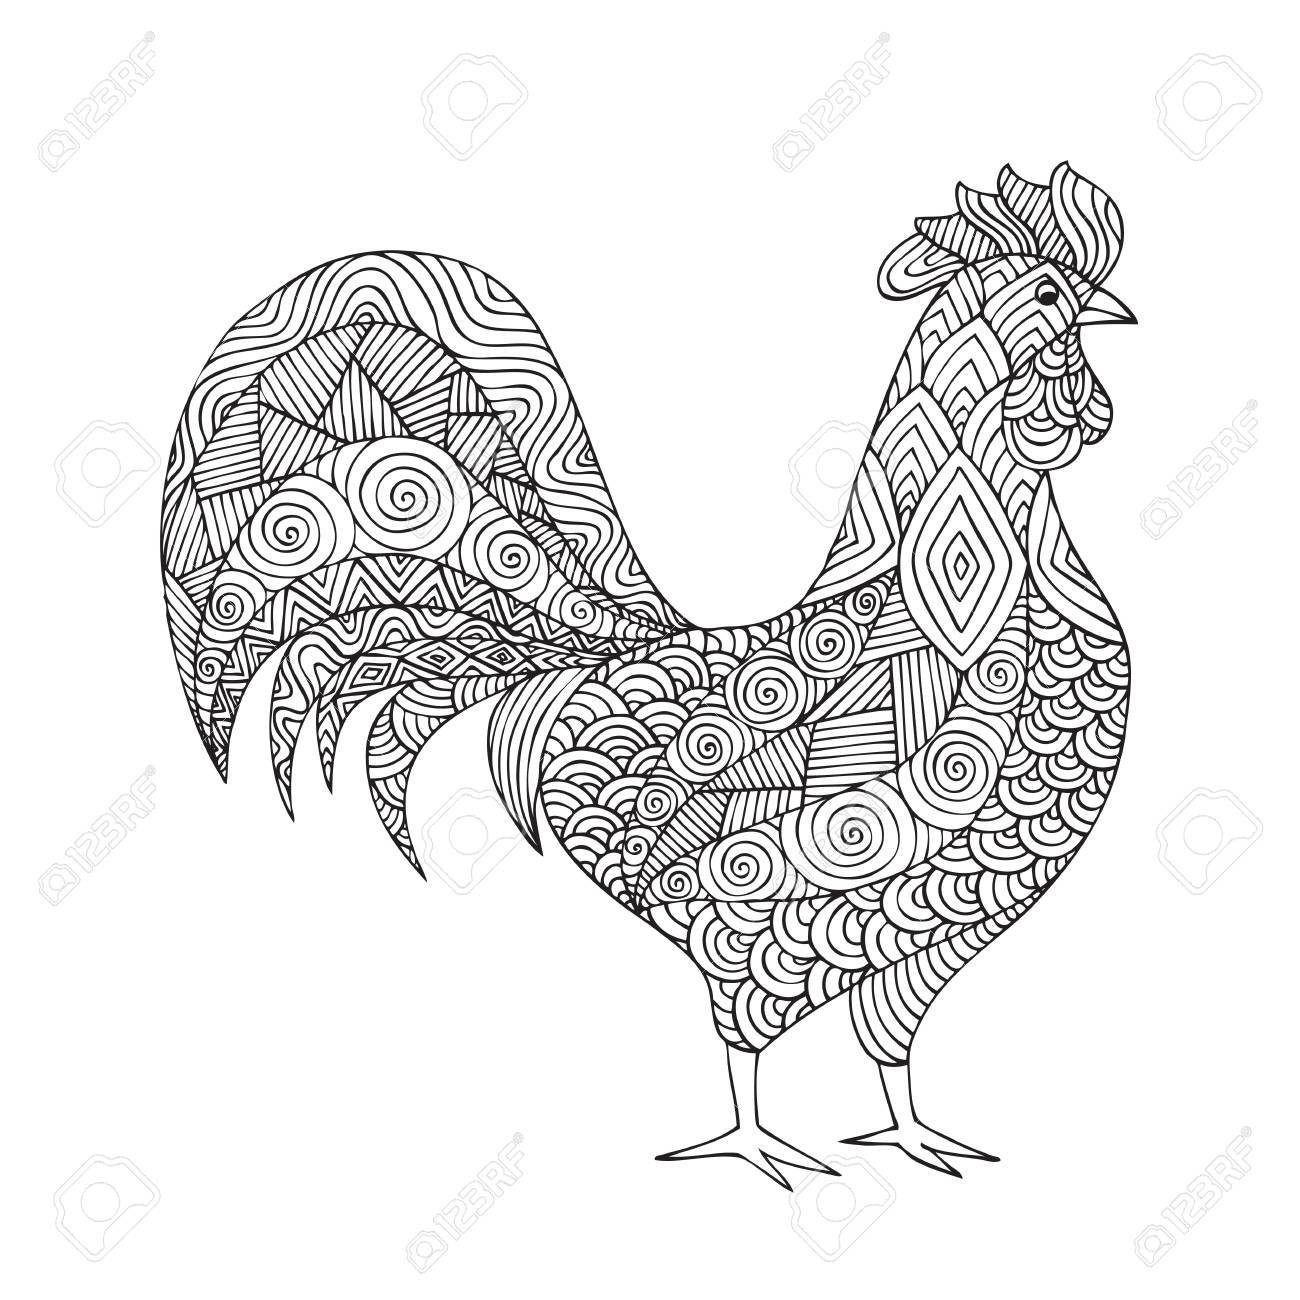 Rooster Coloring Page Awesome Of Year Of The Rooster Coloring Page Stock Printable